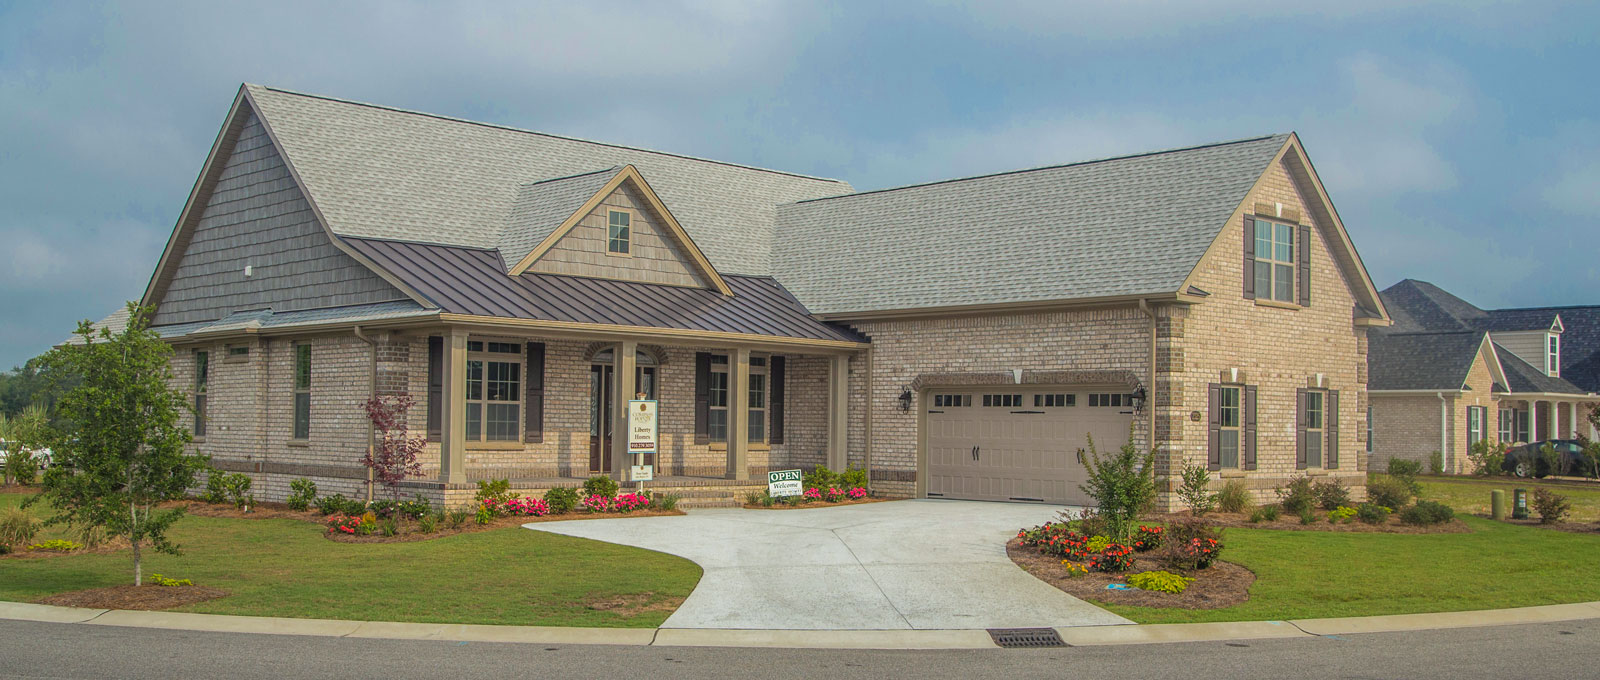 Horizon Homes Gallery 3